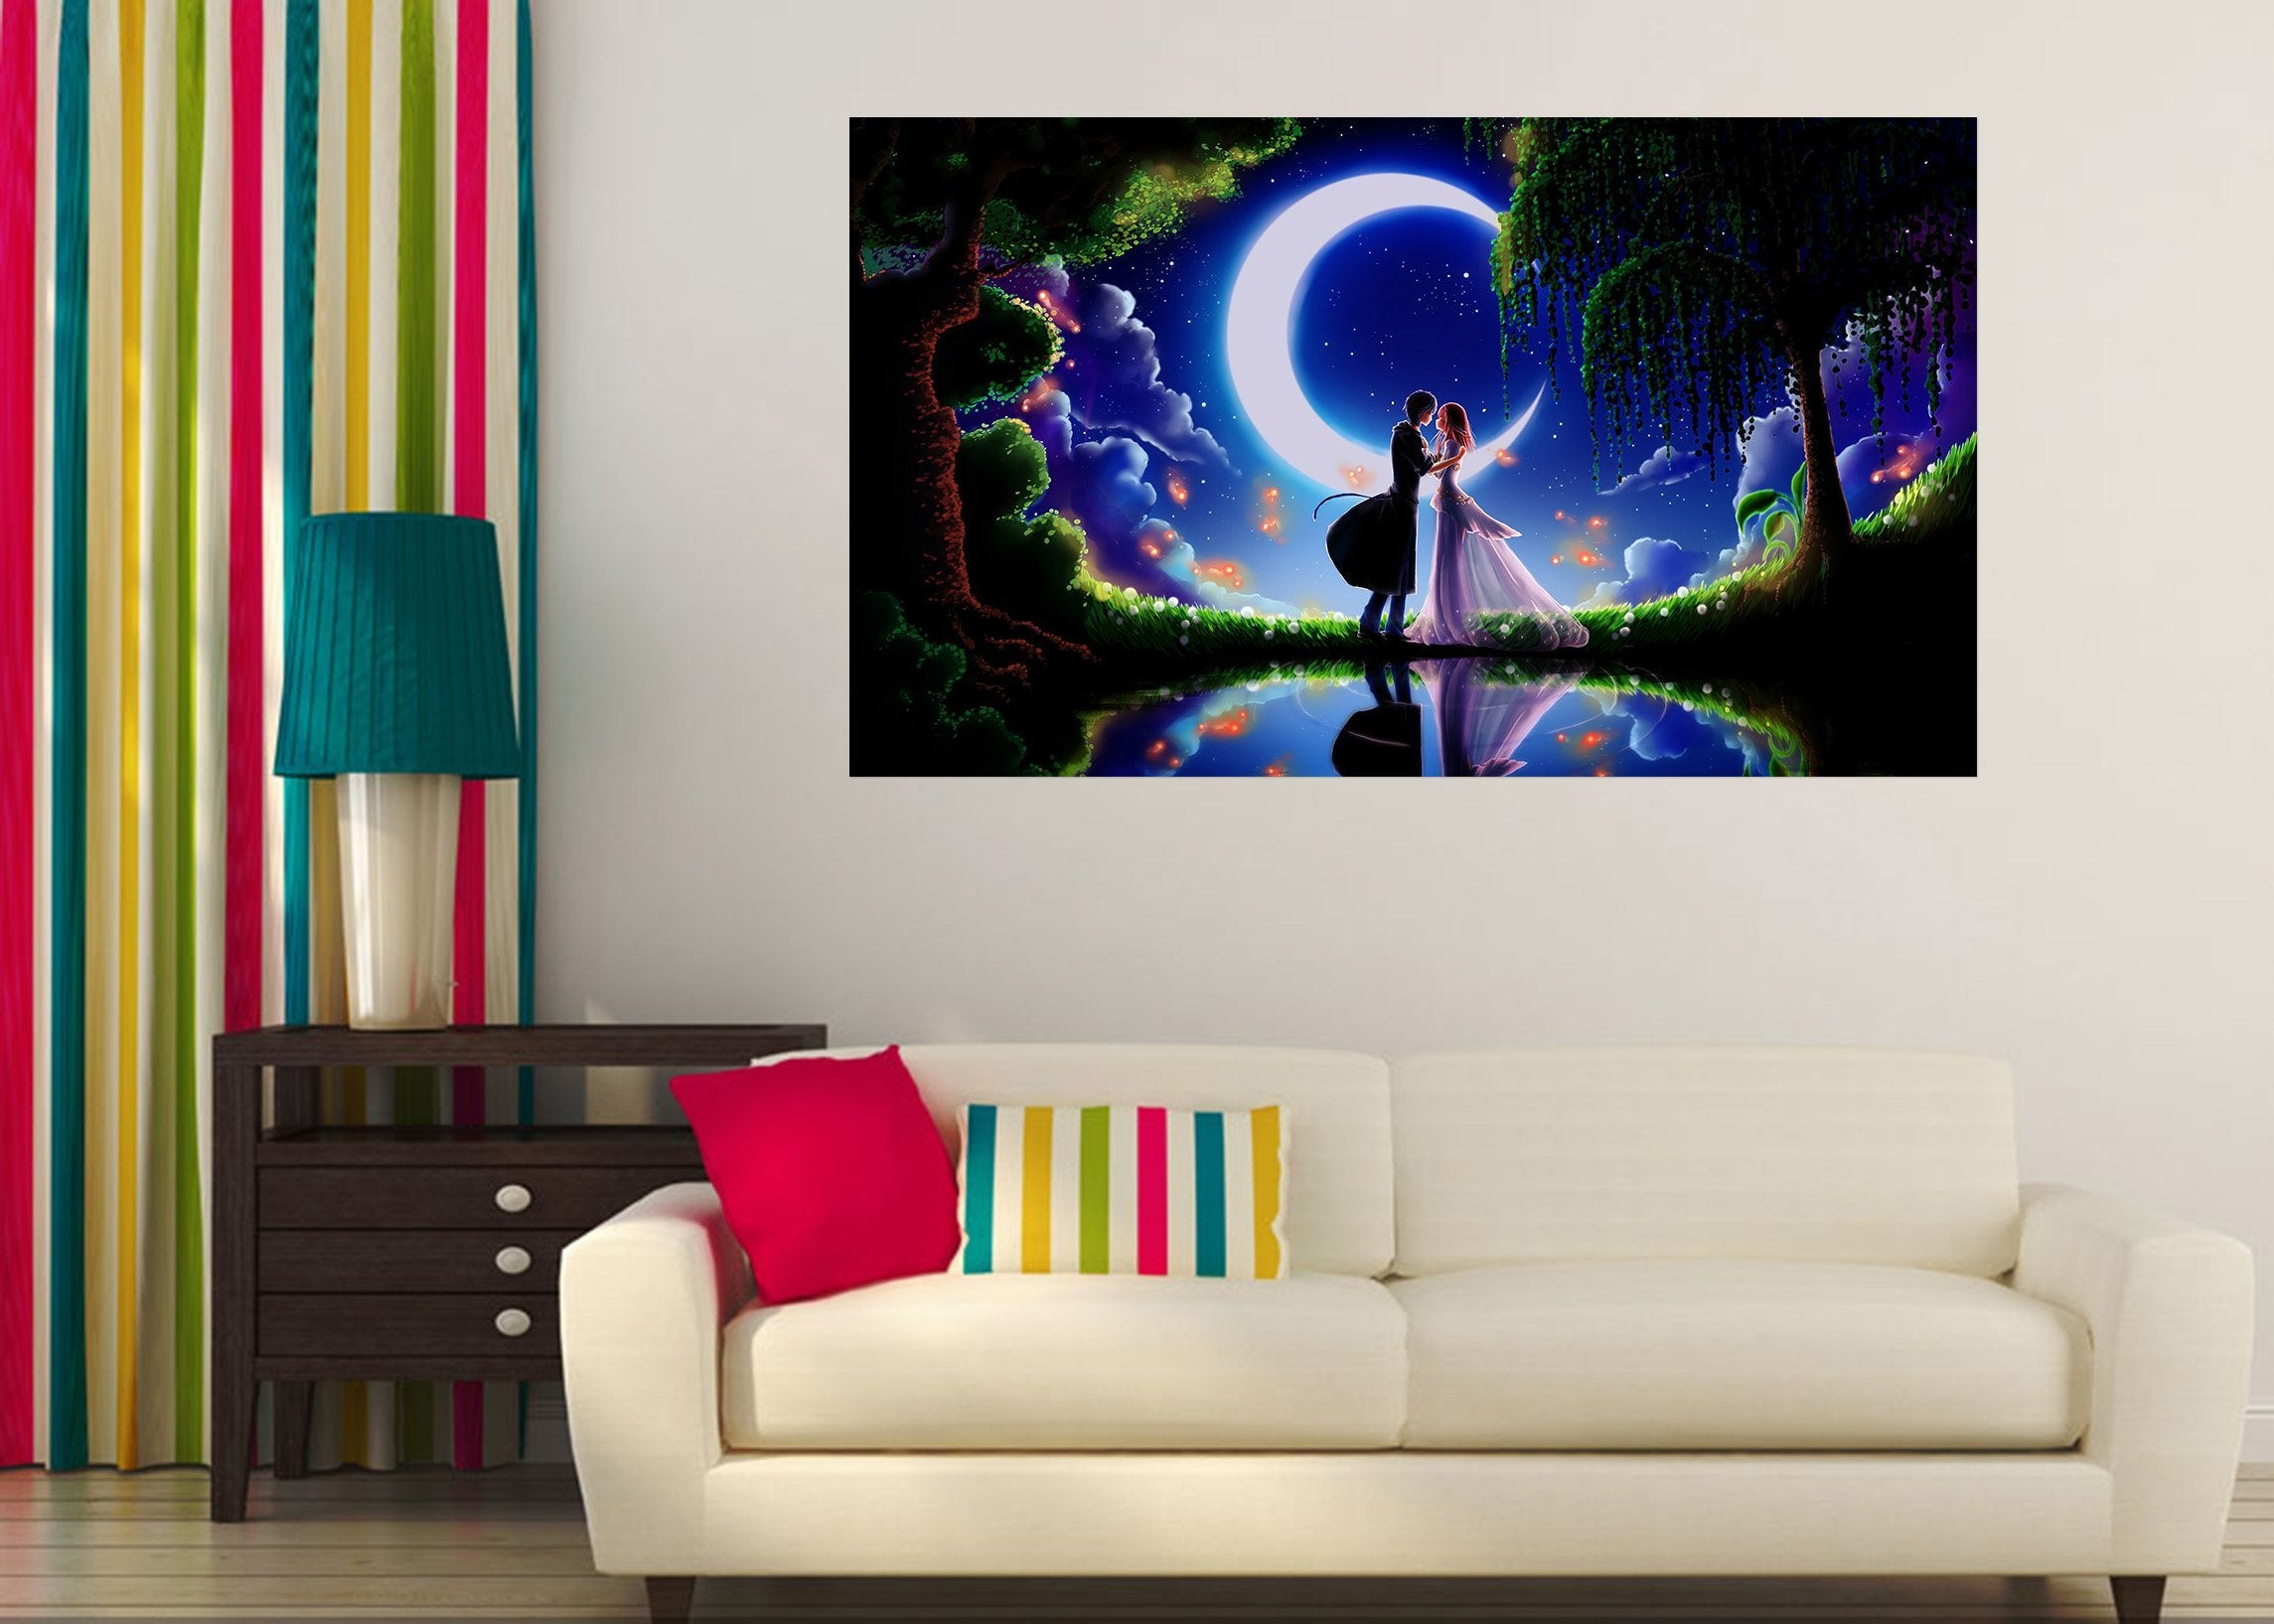 3D Moonlight 419 Anime Wall Stickers Wallpaper AJ Wallpaper 2